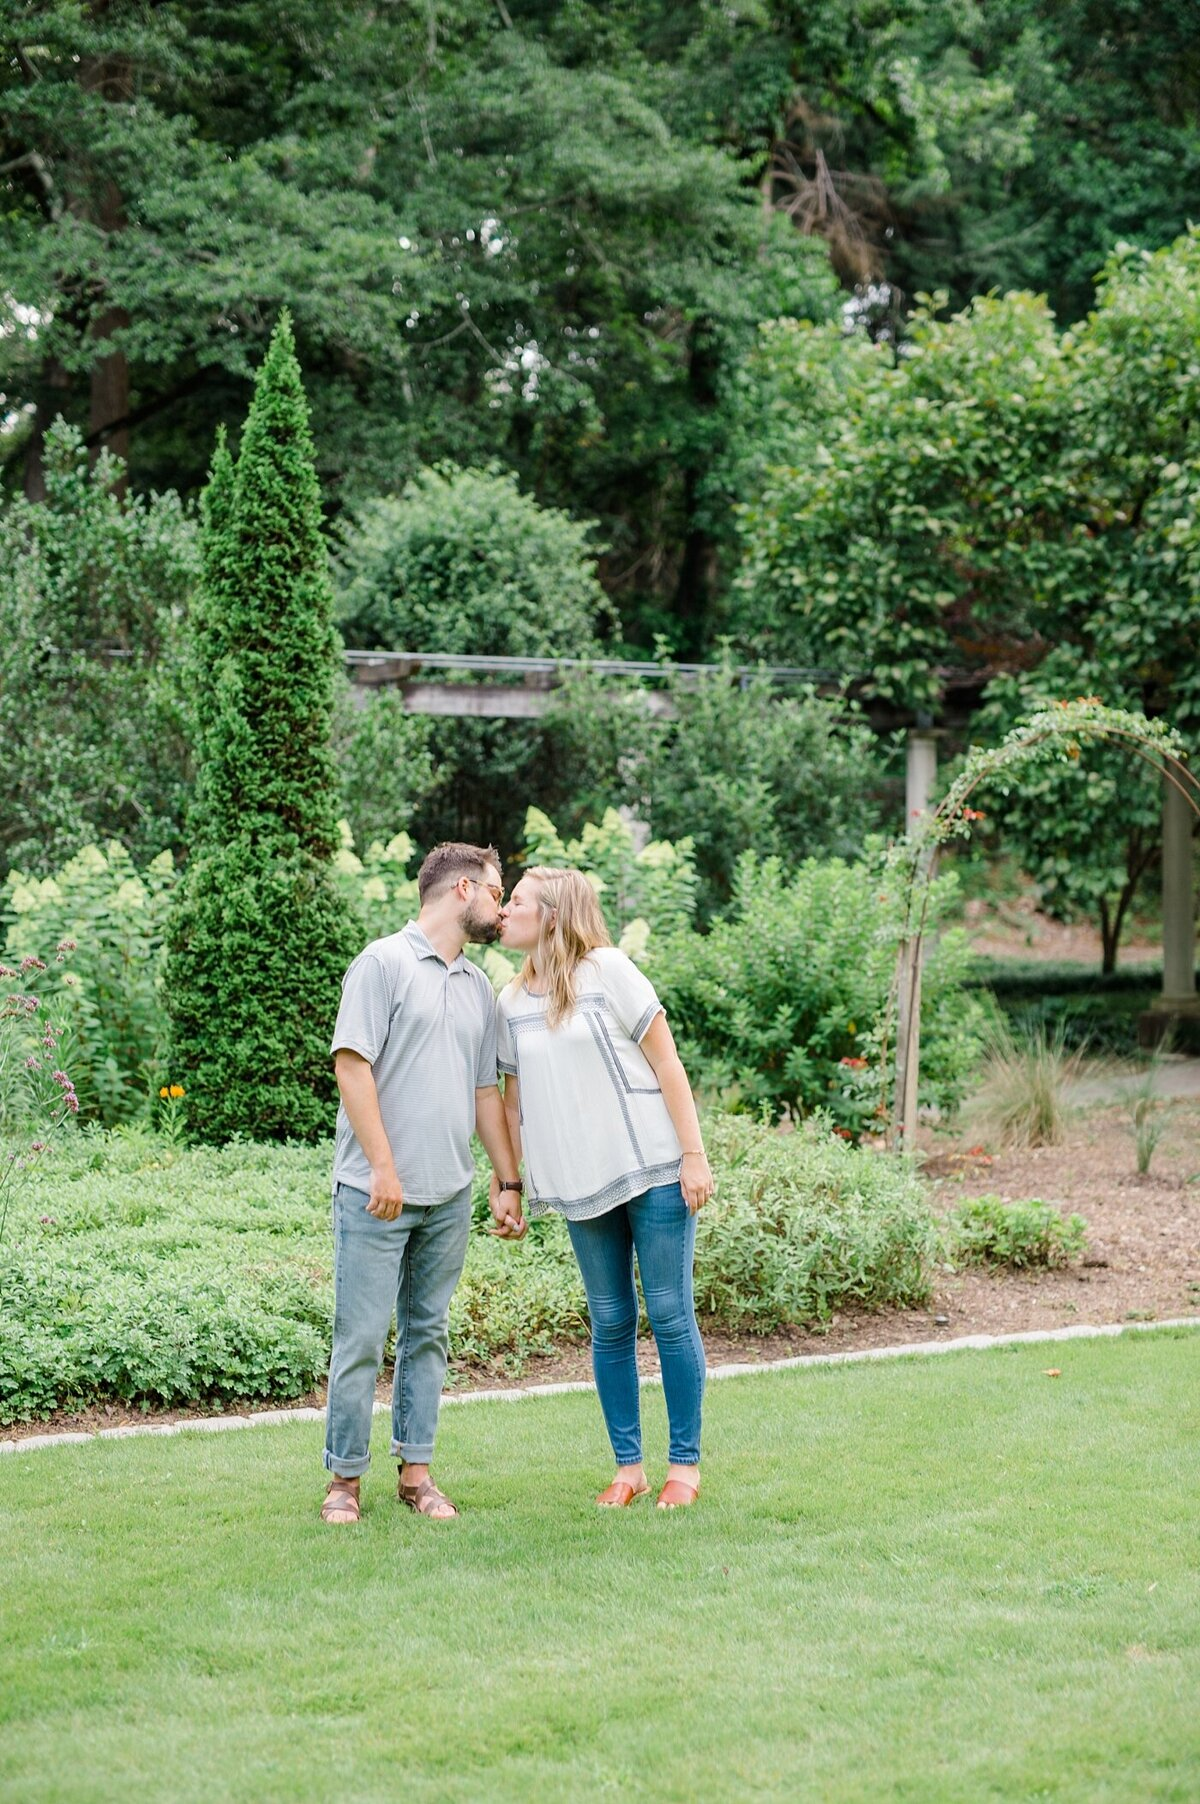 cator-woolford-gardens-engagement-wedding-photographer-laura-barnes-photo-shackelford-42